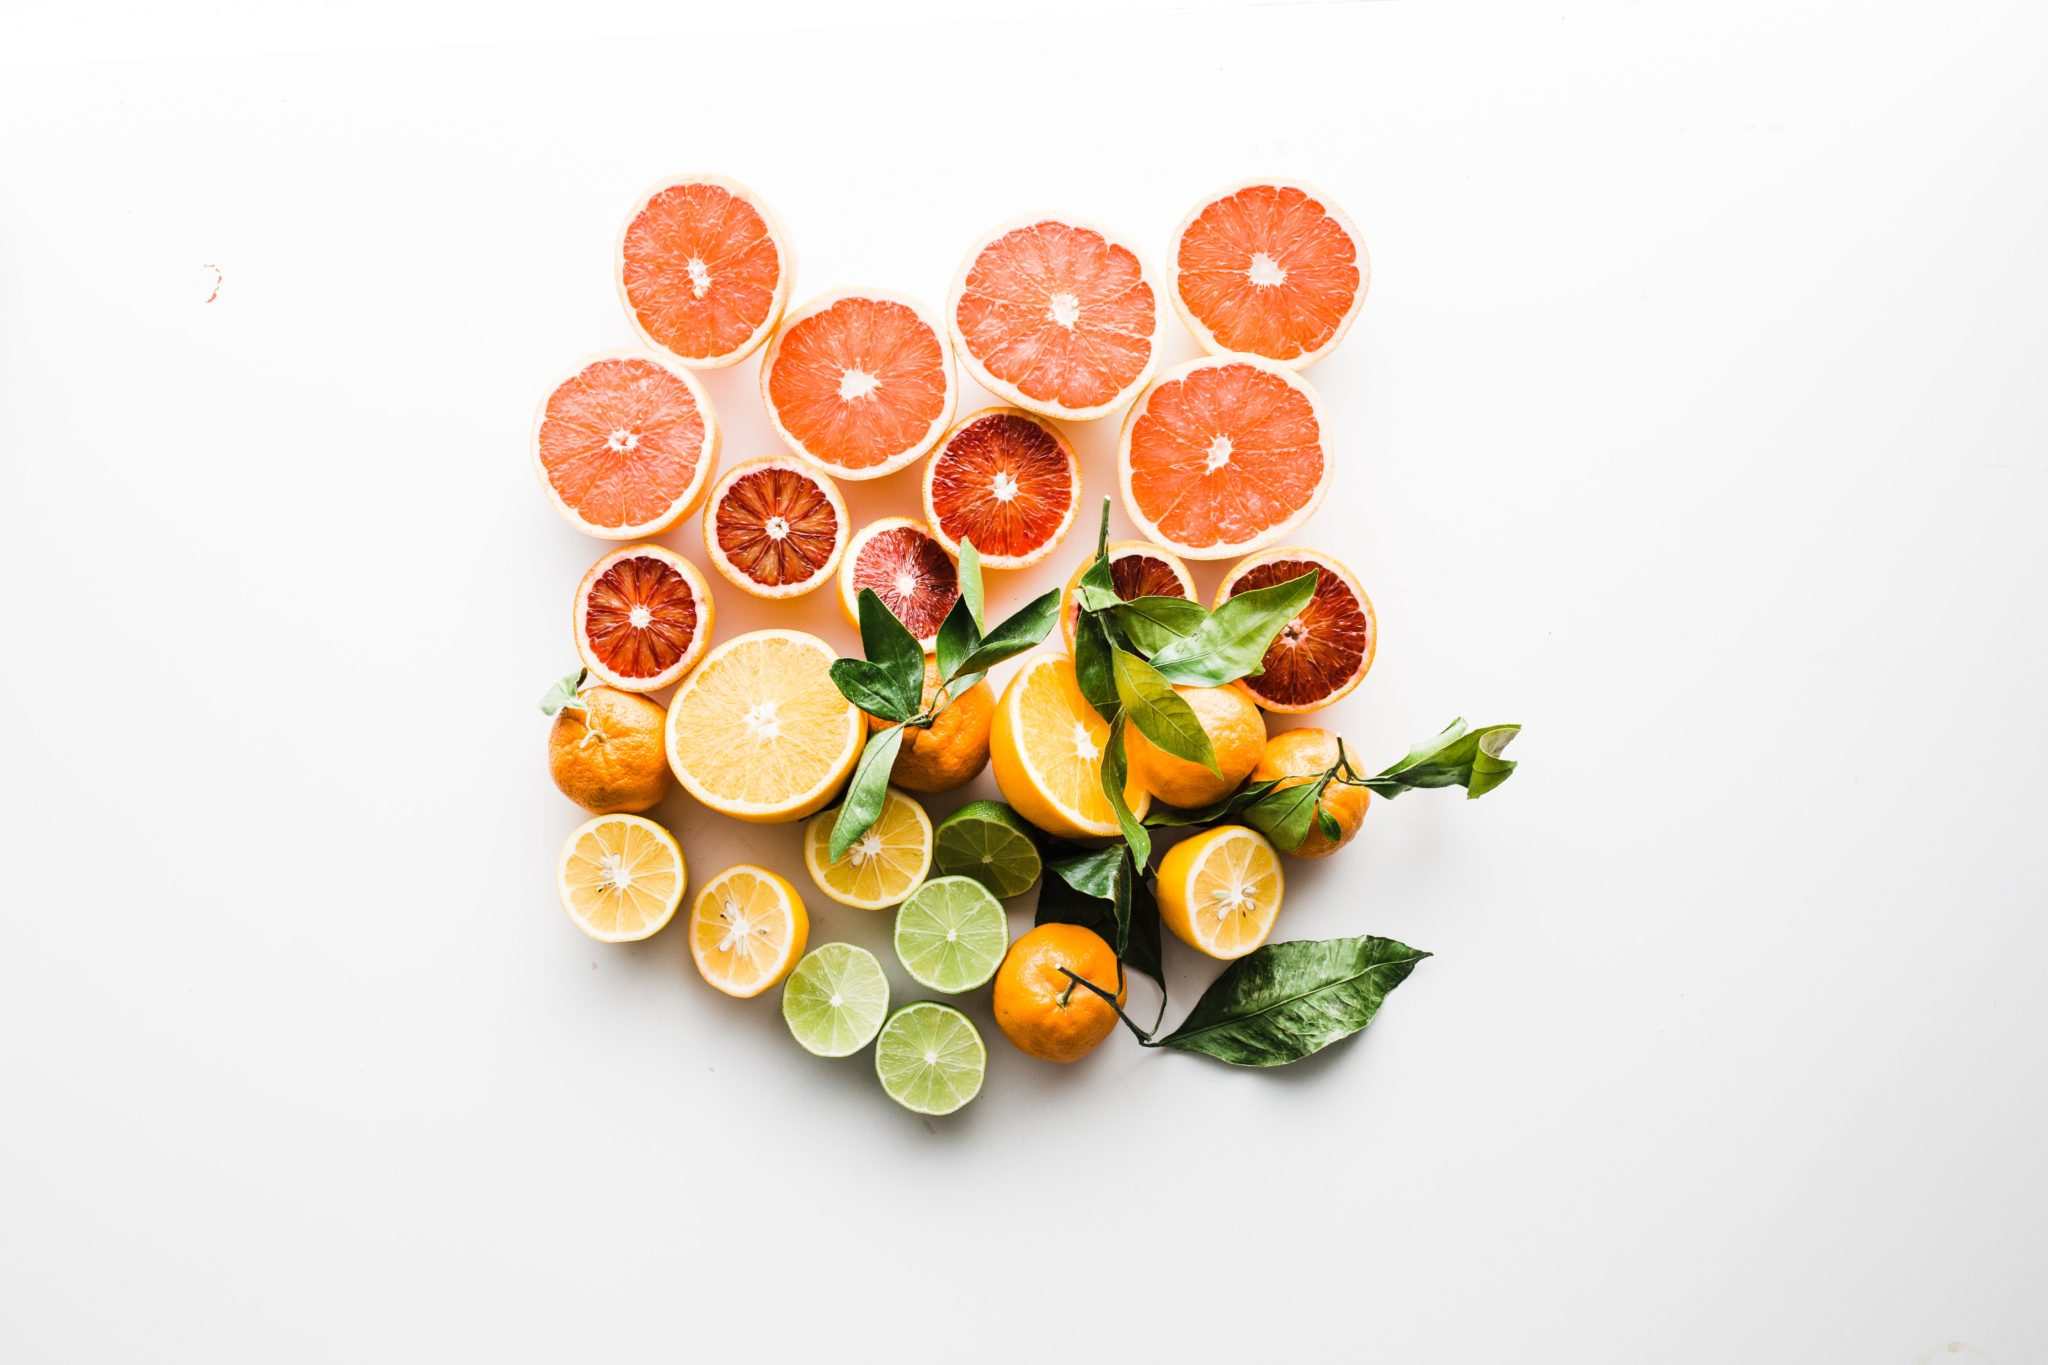 birds eye view of various fruits on a white background